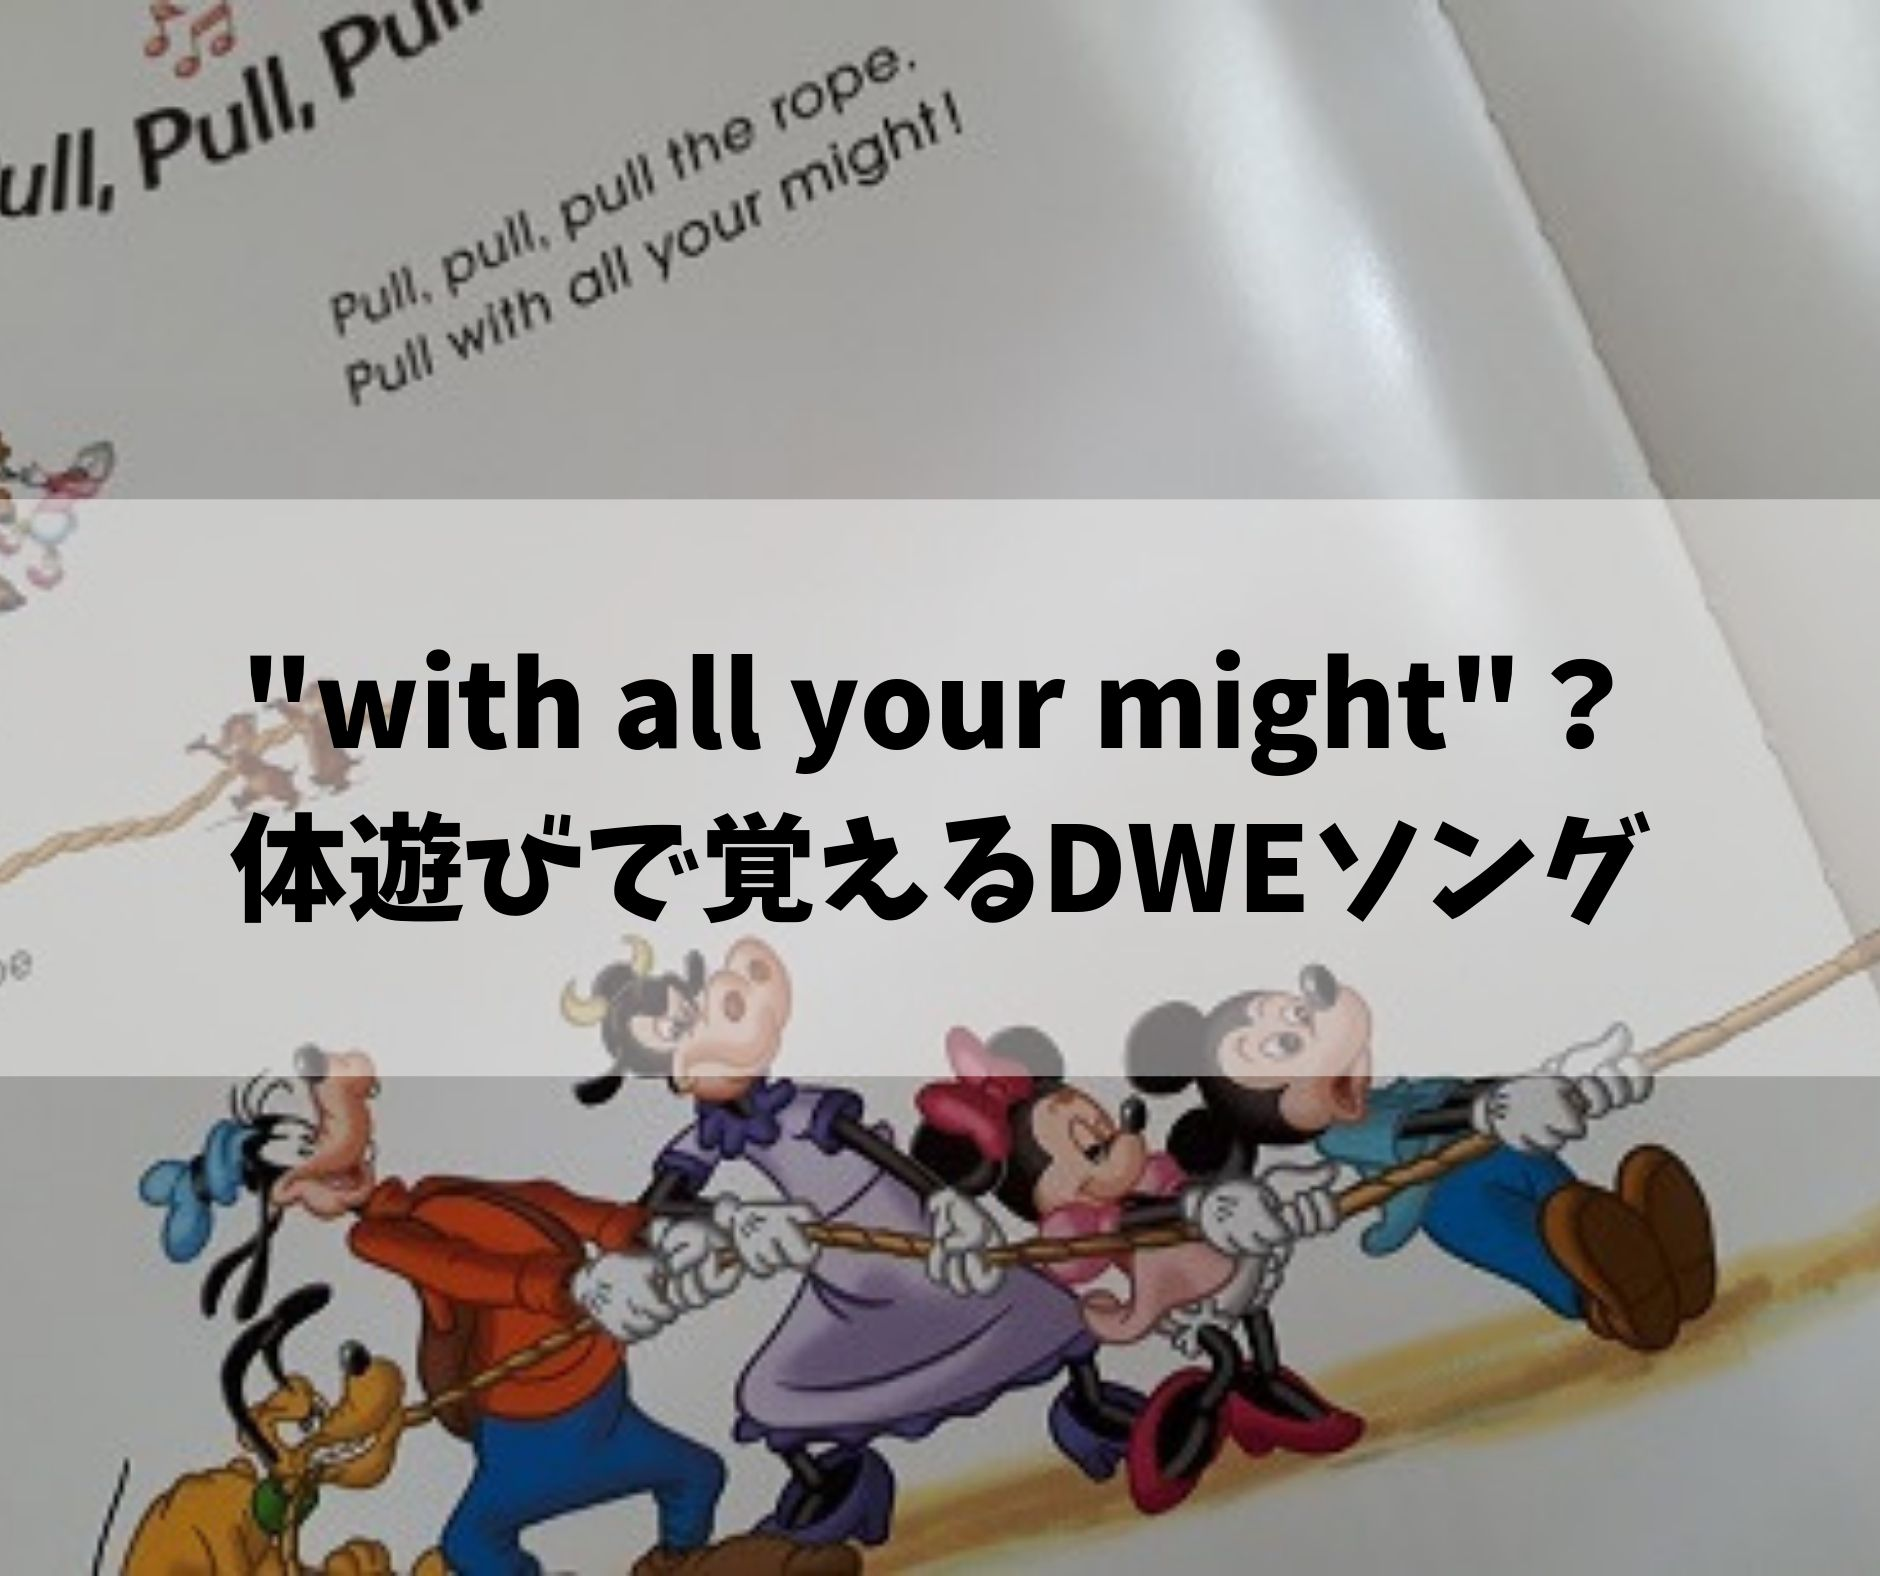 """with all your might""の意味は?体遊びで覚えるDWEソング"